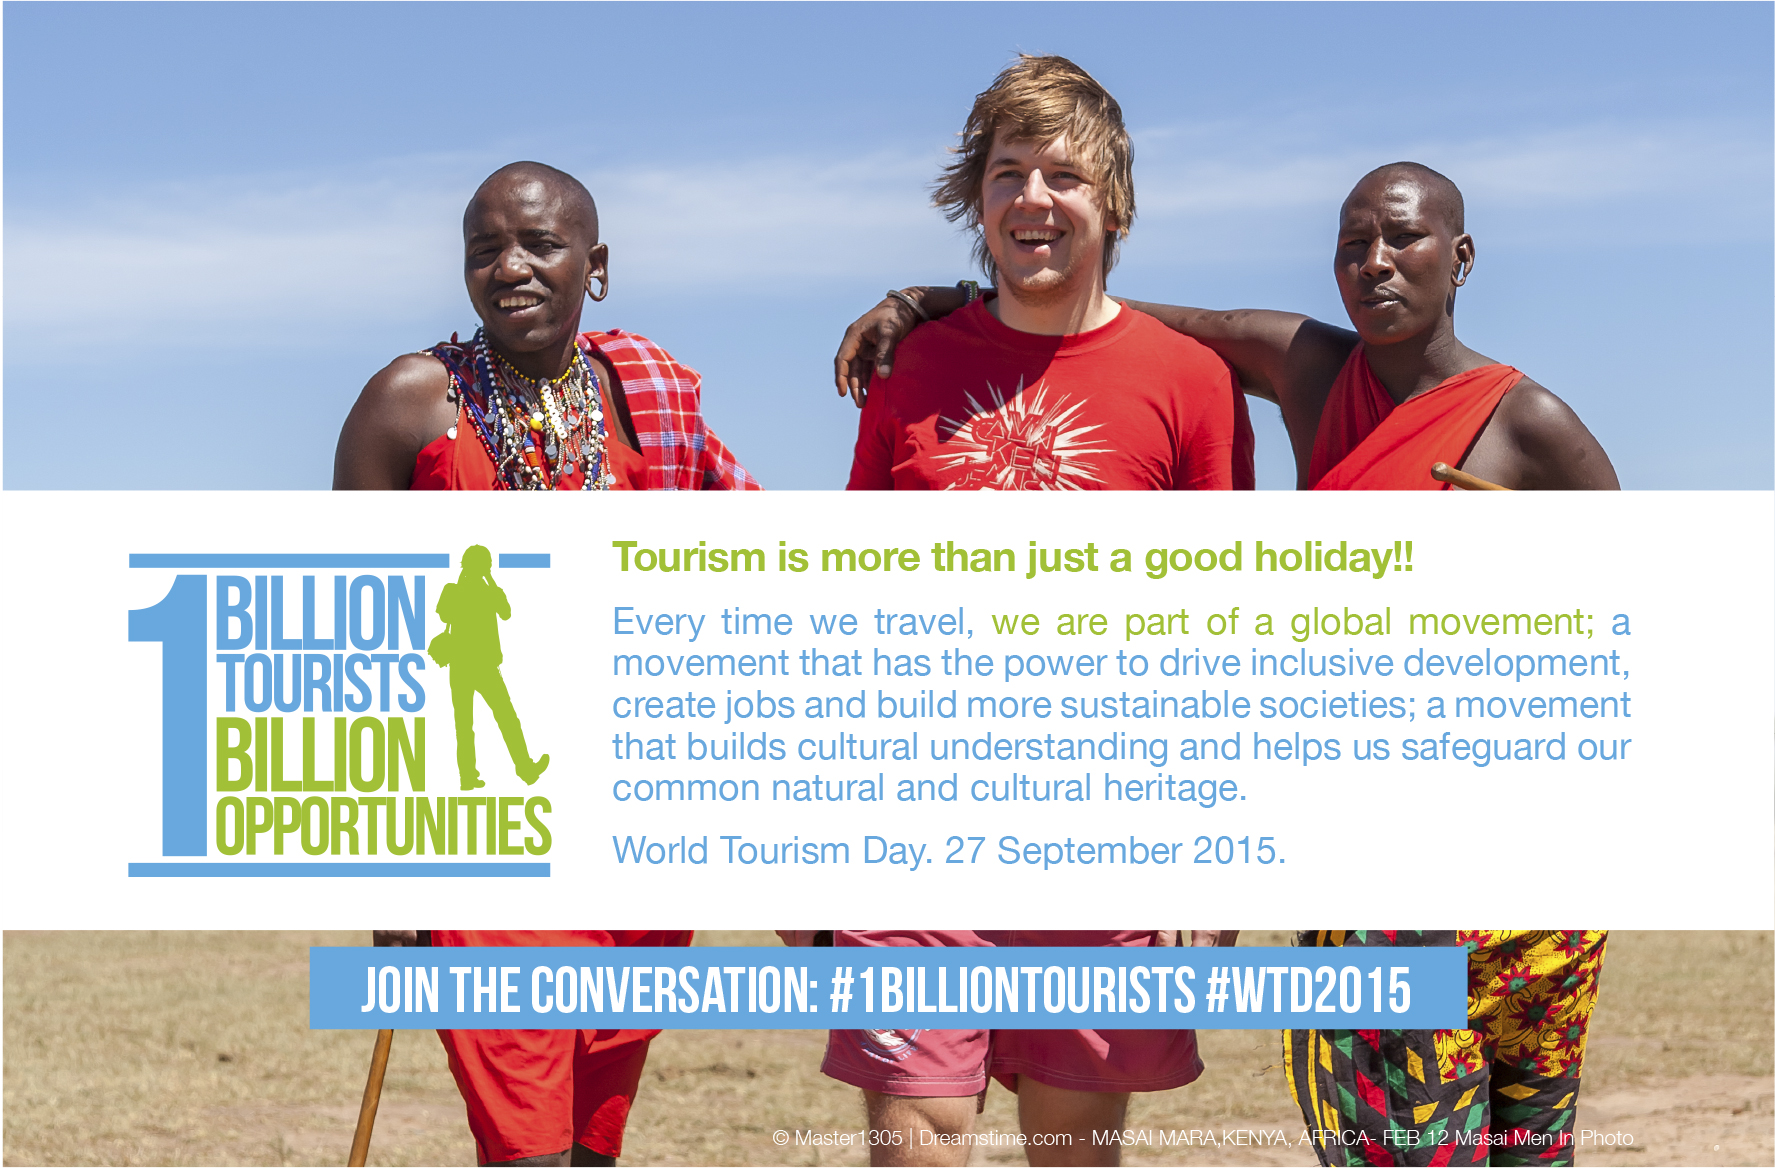 How tourism can drive positive change for our planet and all people